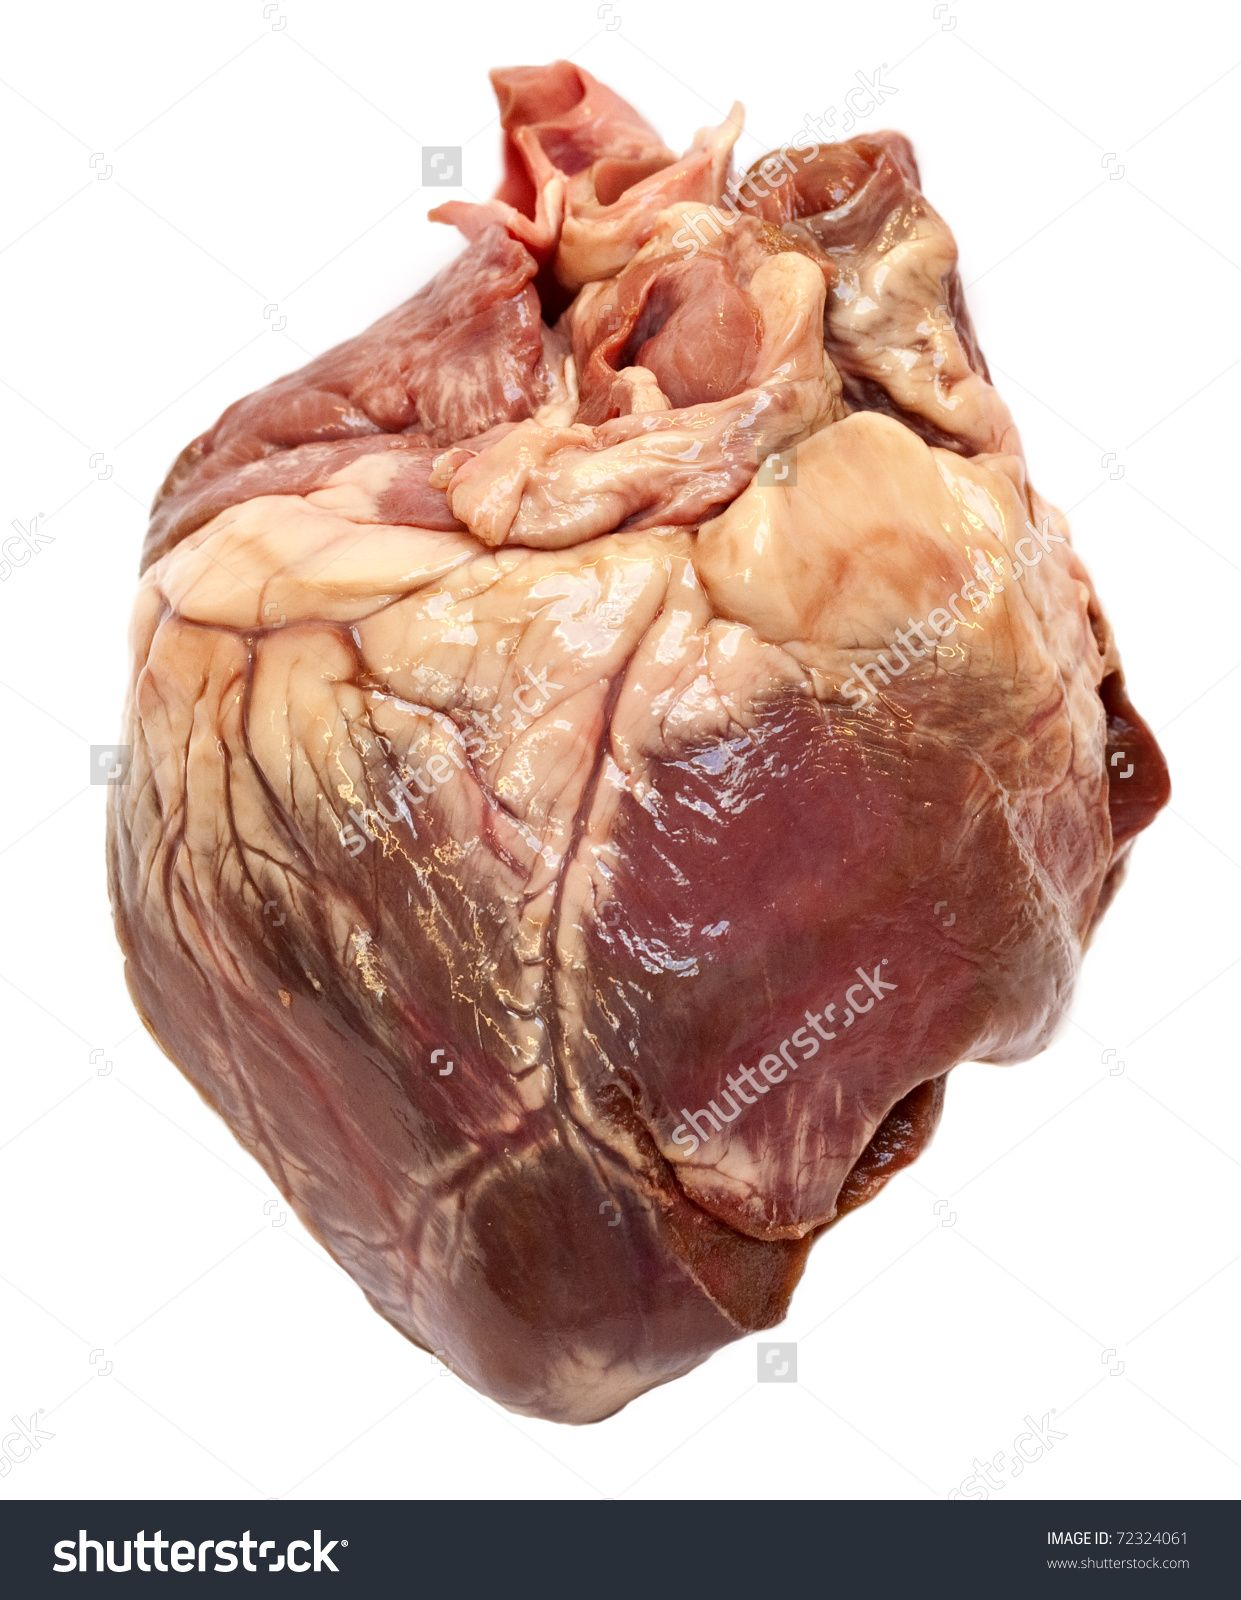 Real human heart images - photo#25